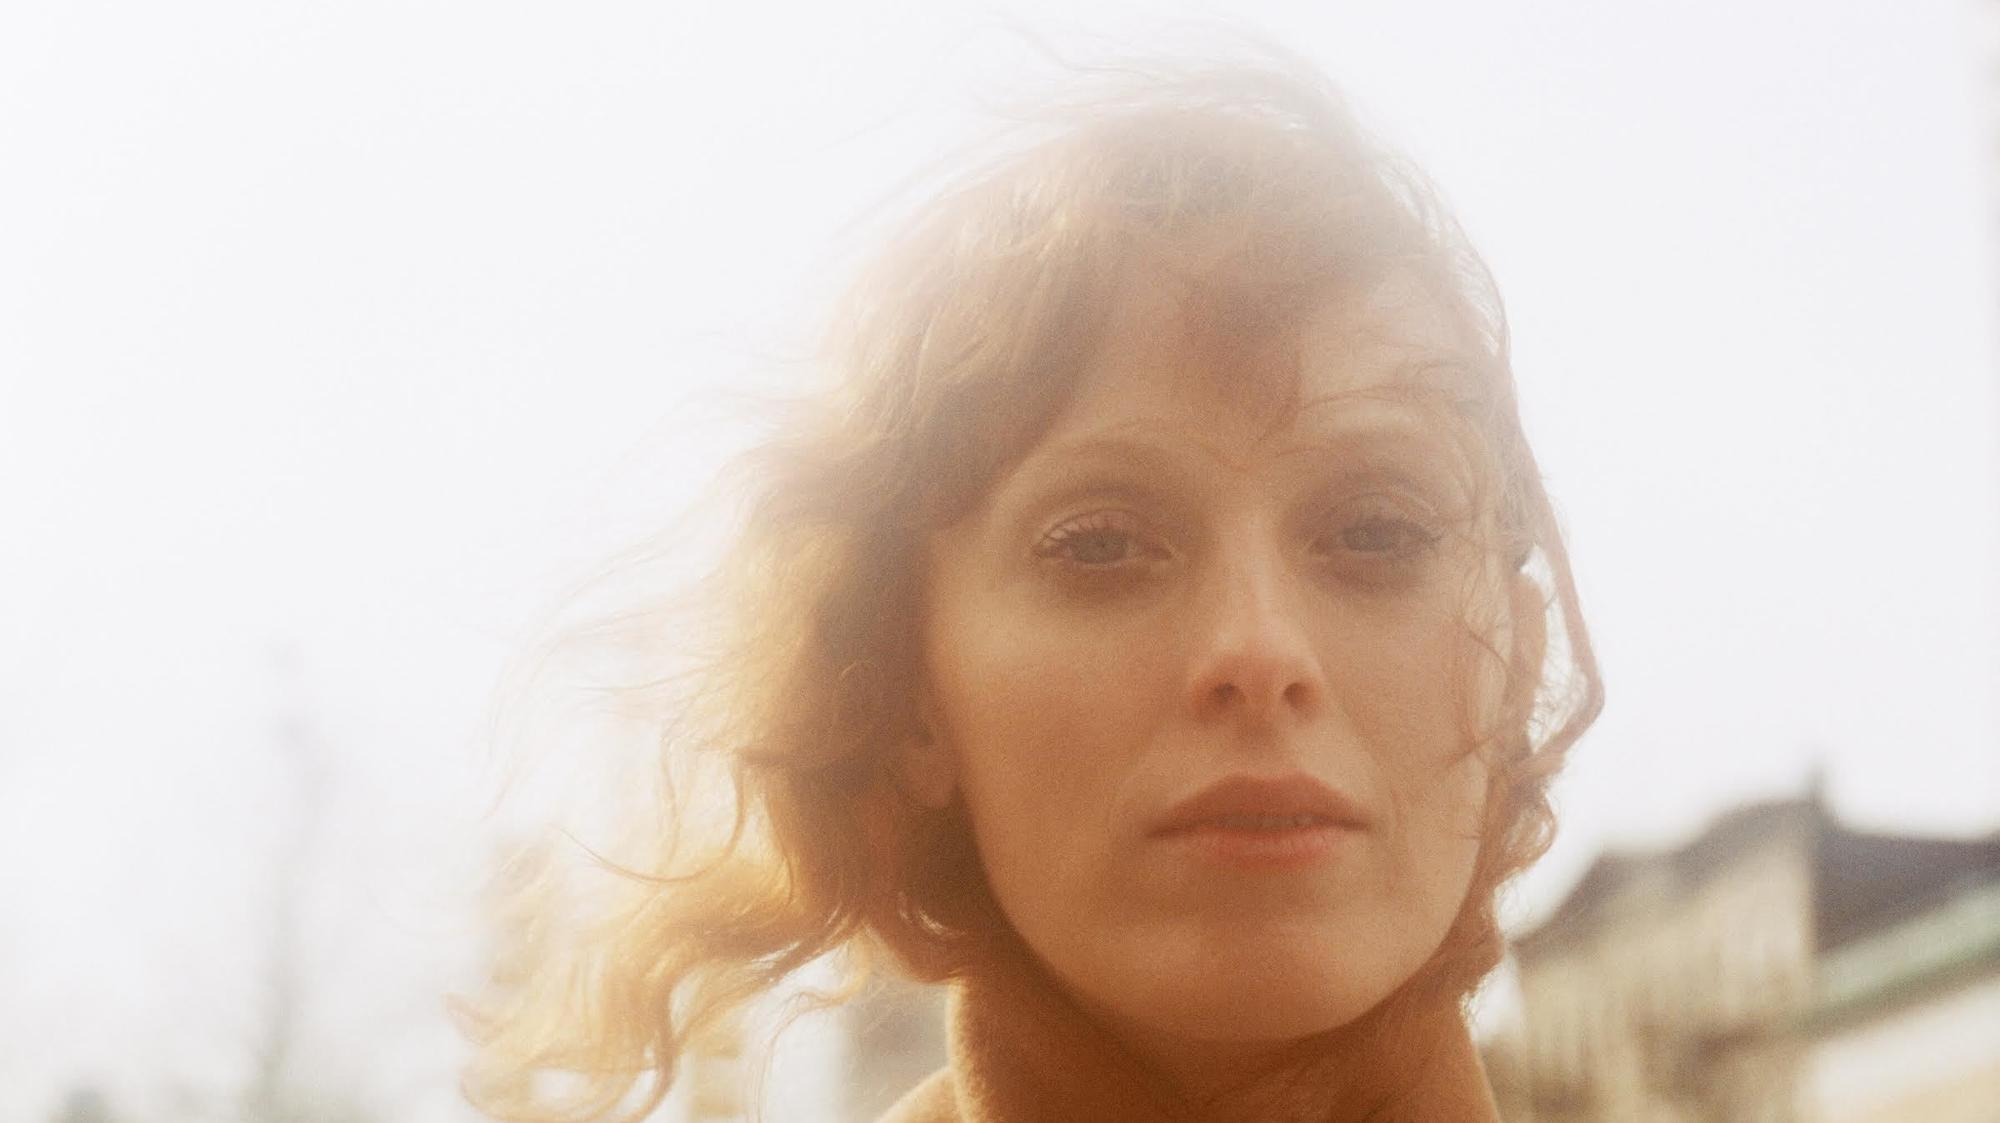 karen elson on stevie nicks, songwriting, and standing on her own